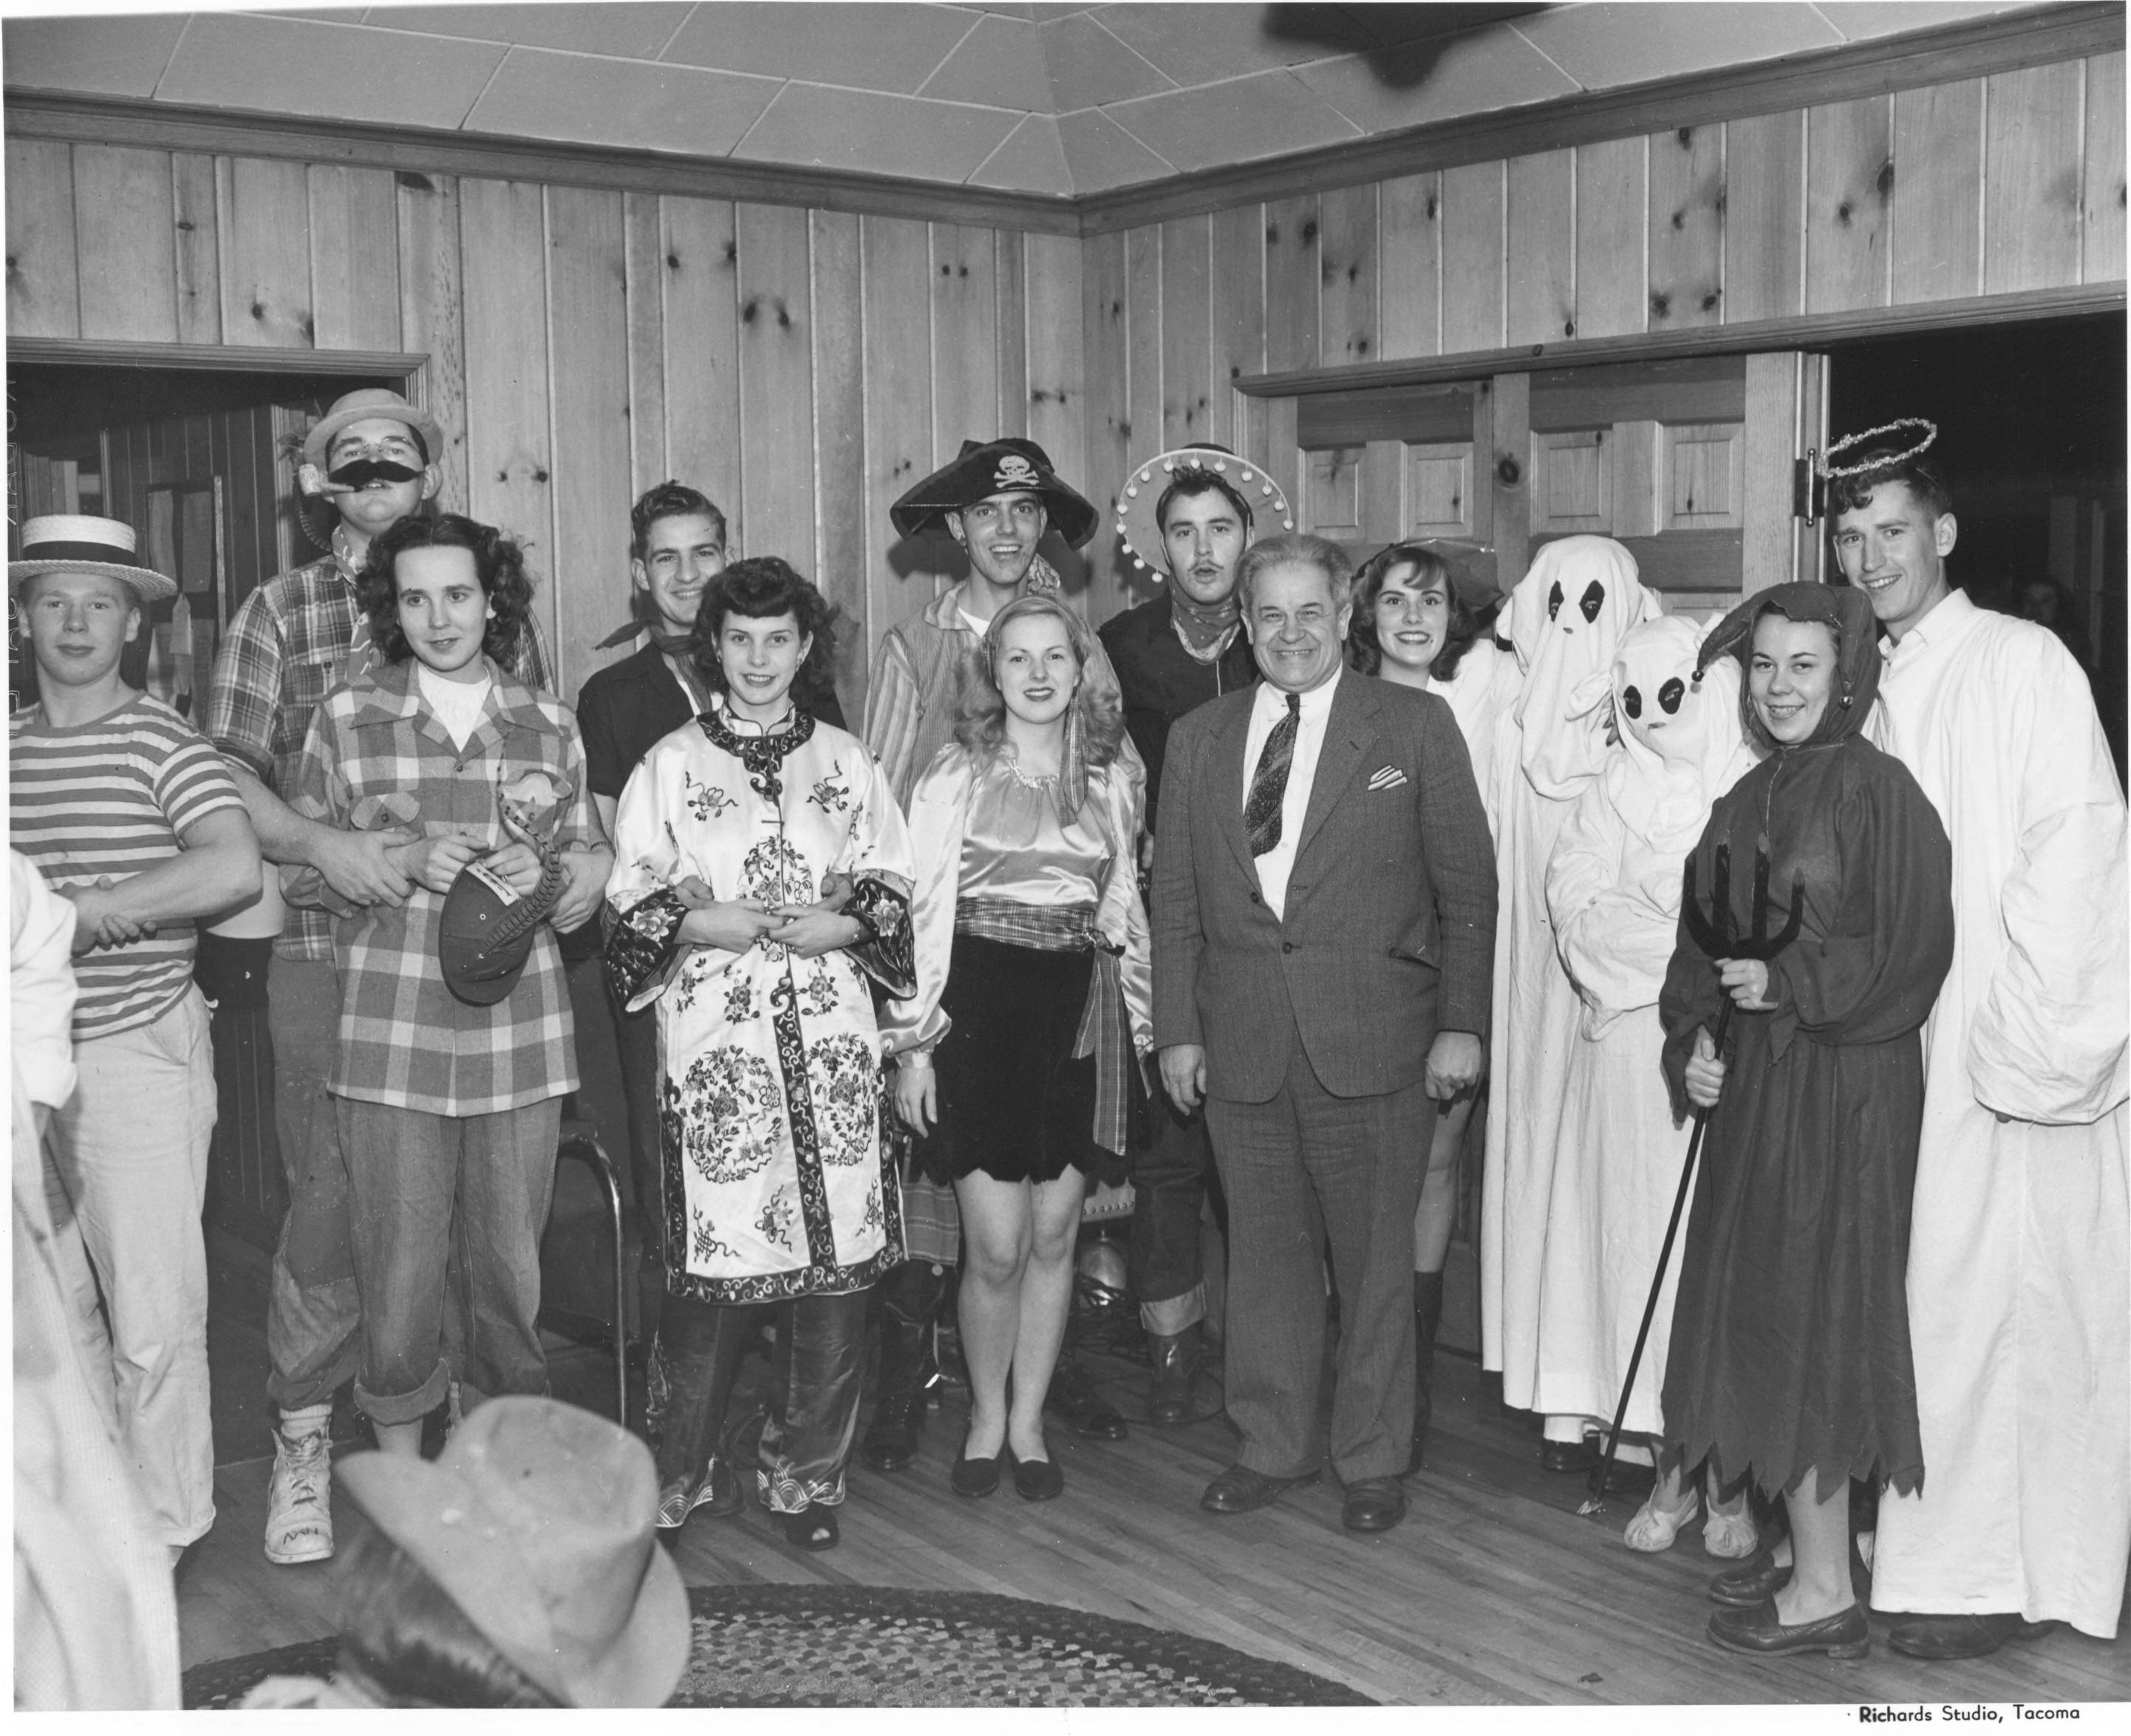 In October of 1947, the Sigma Nu fraternity at CPS (UPS) hosted a Halloween costume party for fraternity members and their guests. The various revelers dressed up as angels, devils, ghosts and pirates. The distinguished fellow who seems to be dressed as a college professor was in fact Dr. Charles T. Battin, Professor of Economics and Chairman of the Social Studies Division. The couple behind him are Edwin G. Cook III (in sombrero) and, to the right next to ghost, Barbera Jean (Rojean) Knight. The pair married on December 31, 1947.